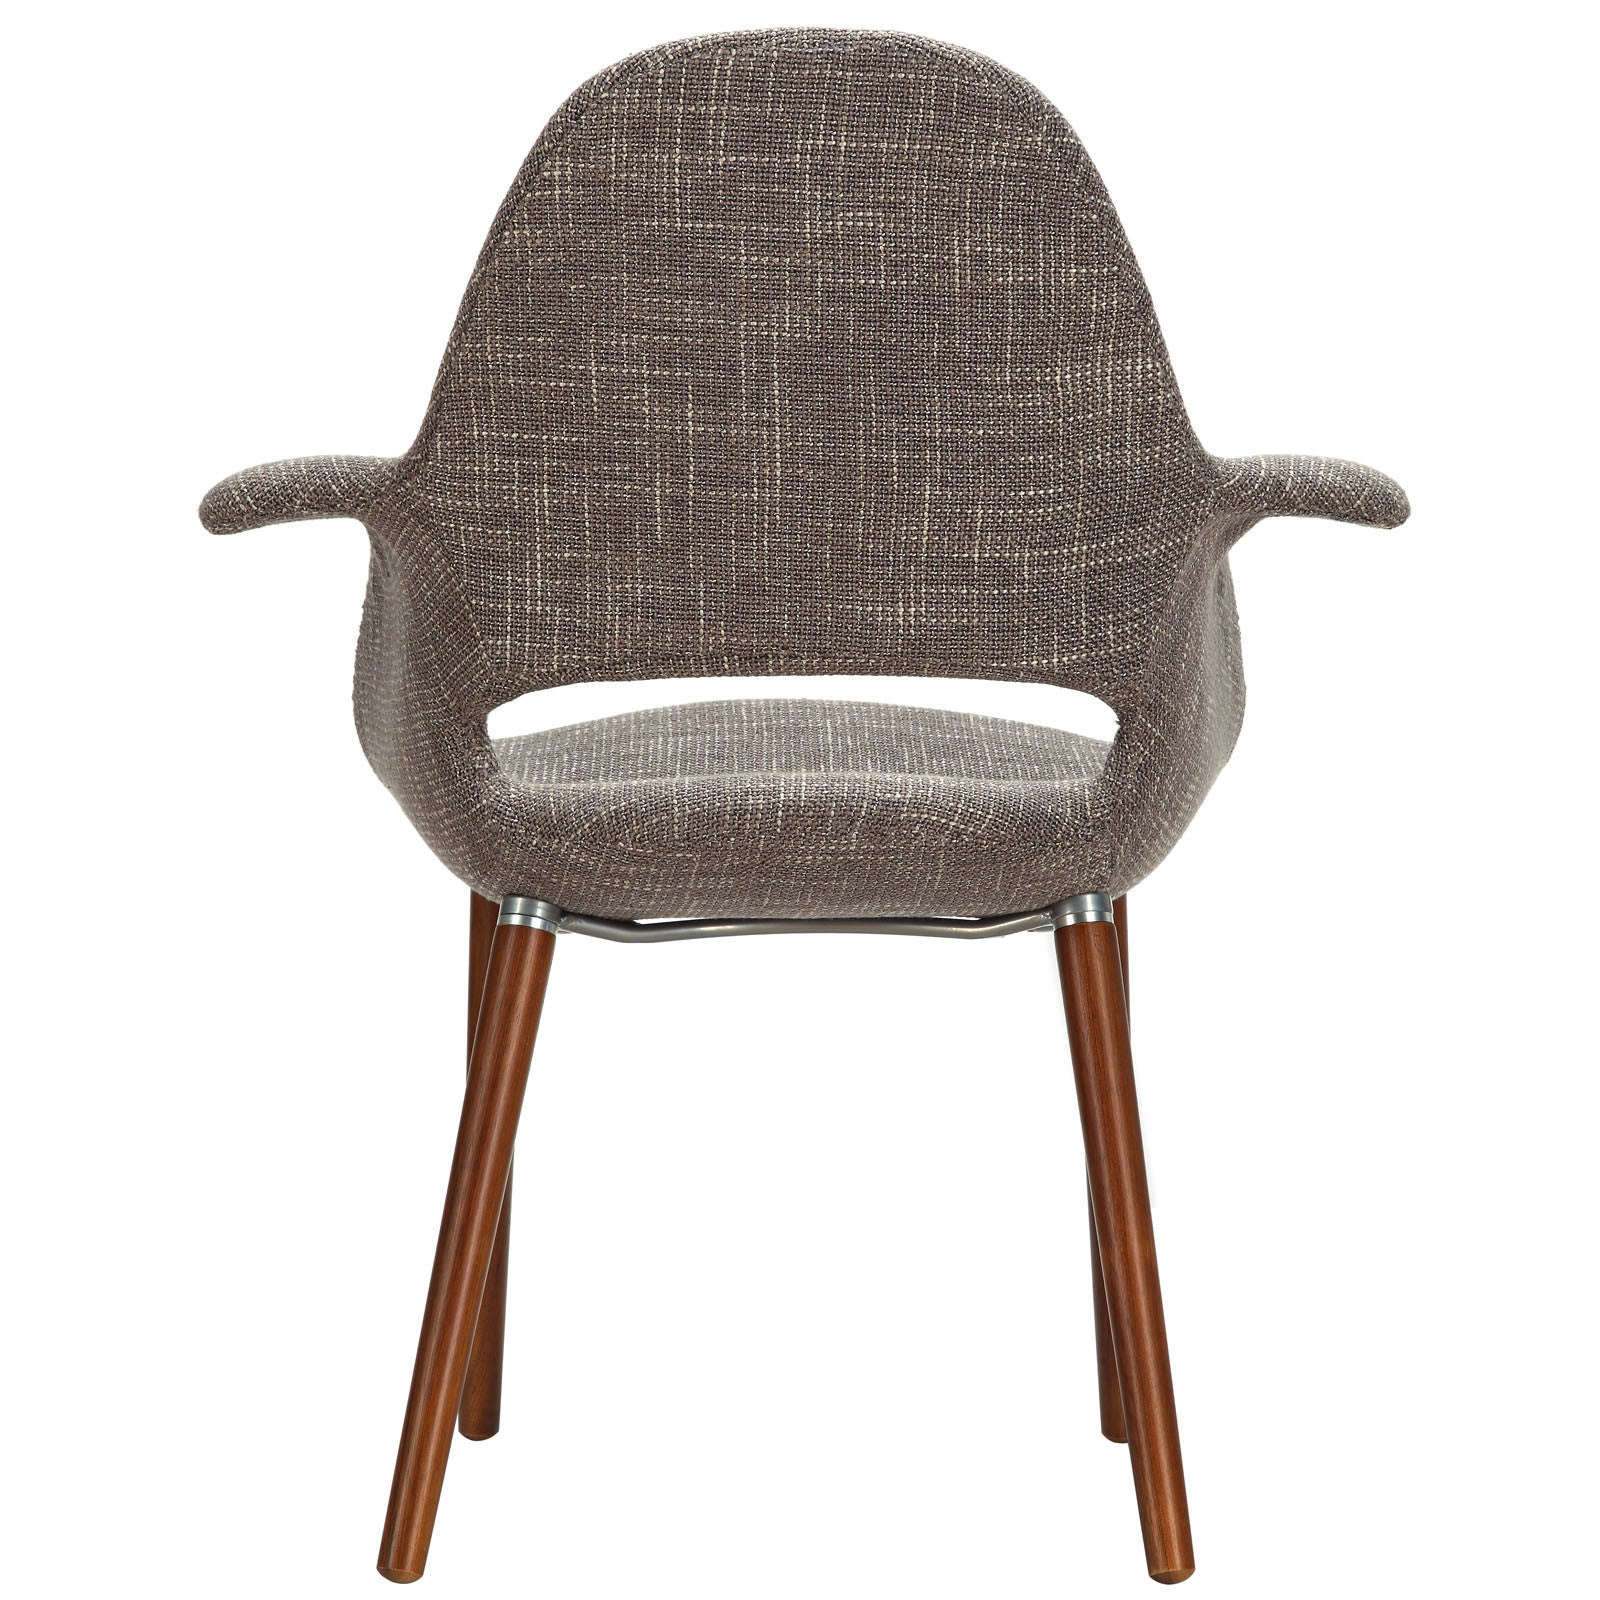 Eames Saarinen Organic Chair Reproduction Mid Century Furniture Montreal The Modern Source